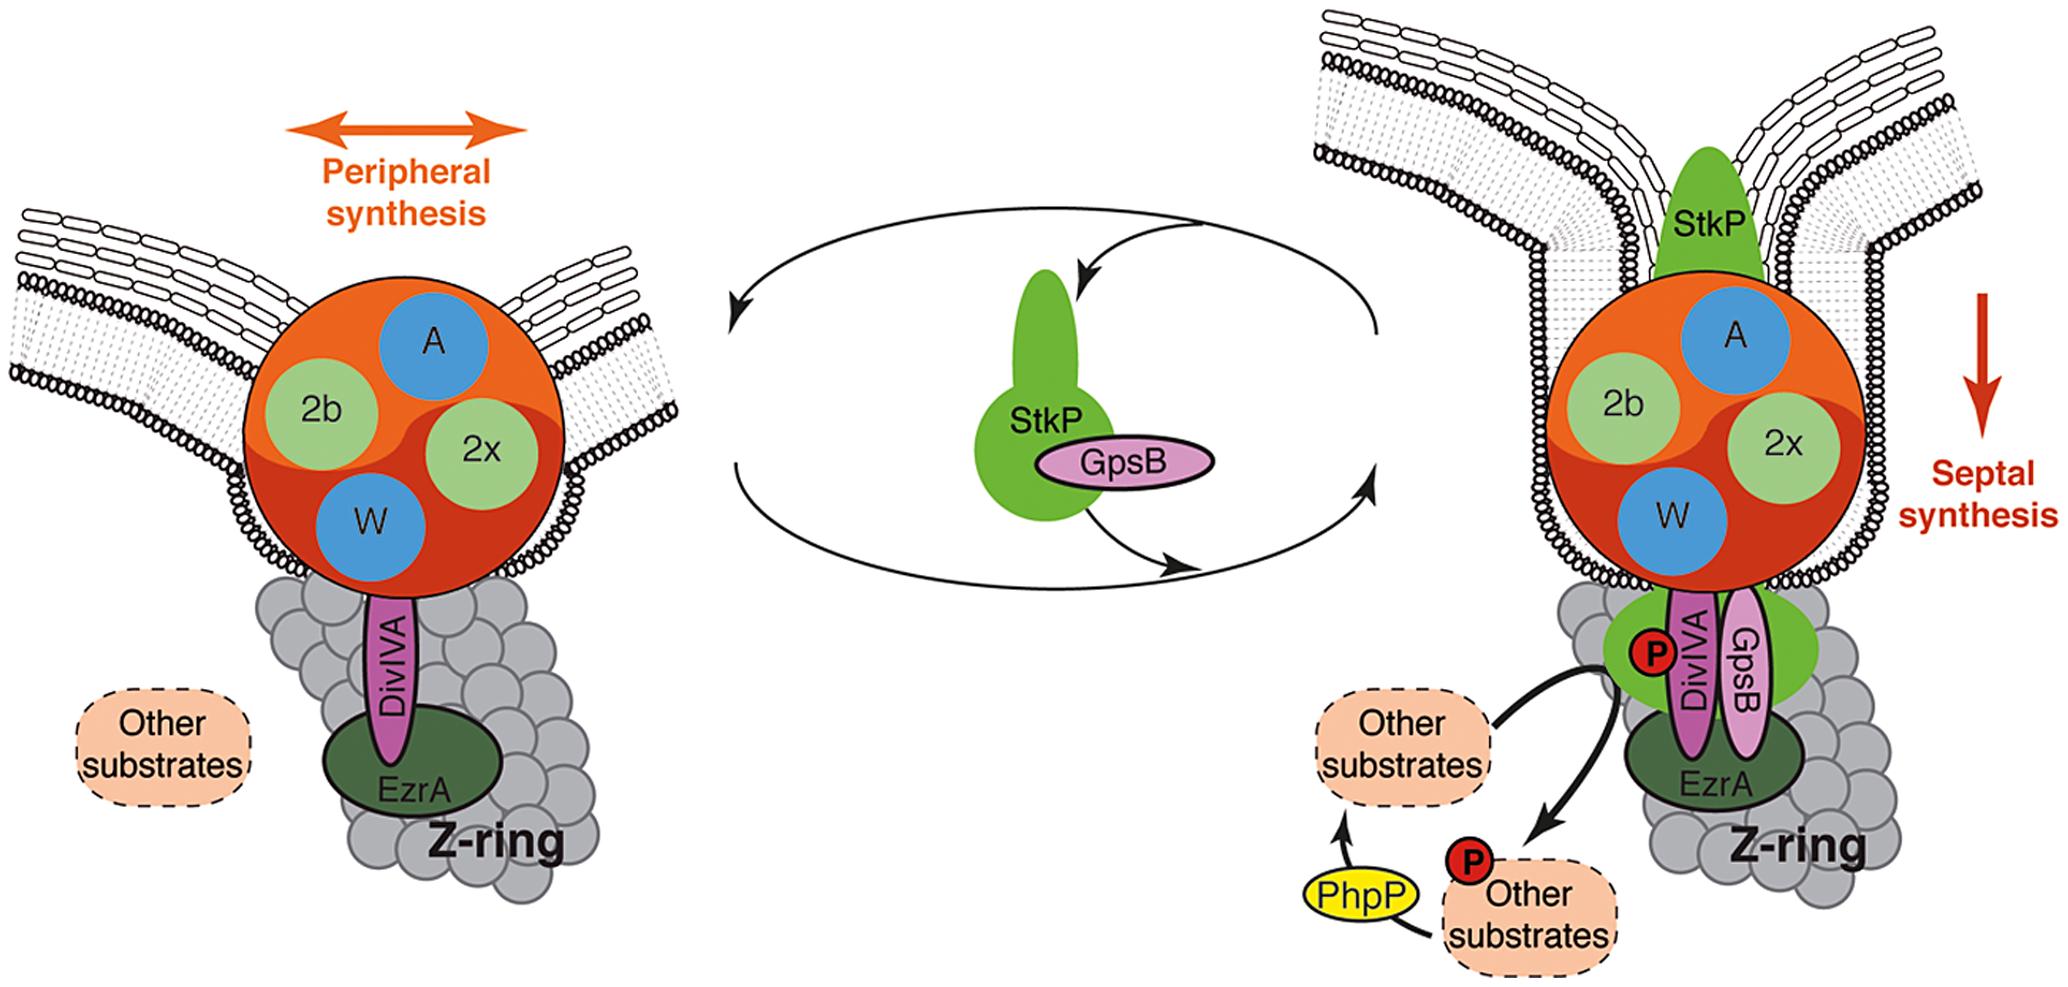 Models for PG synthesis in <i>S. pneumoniae</i>.